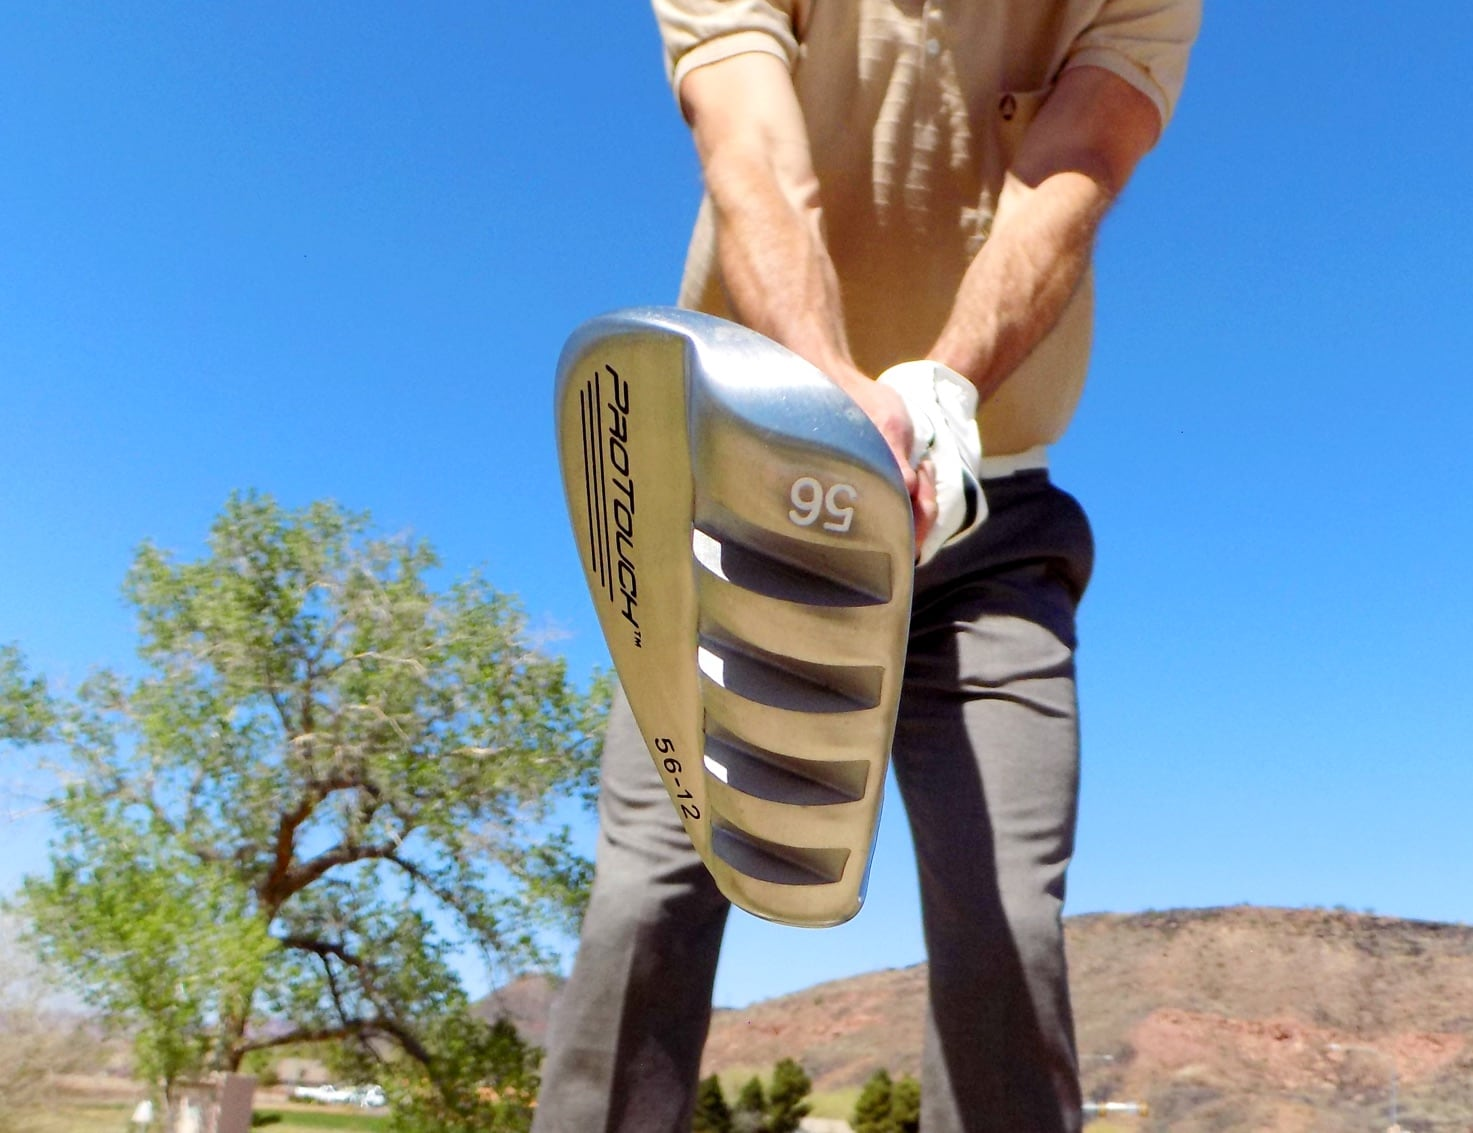 ProTouch® Sole Channel Sand Wedge Golf Club gives you a clear shot out of the sand trap